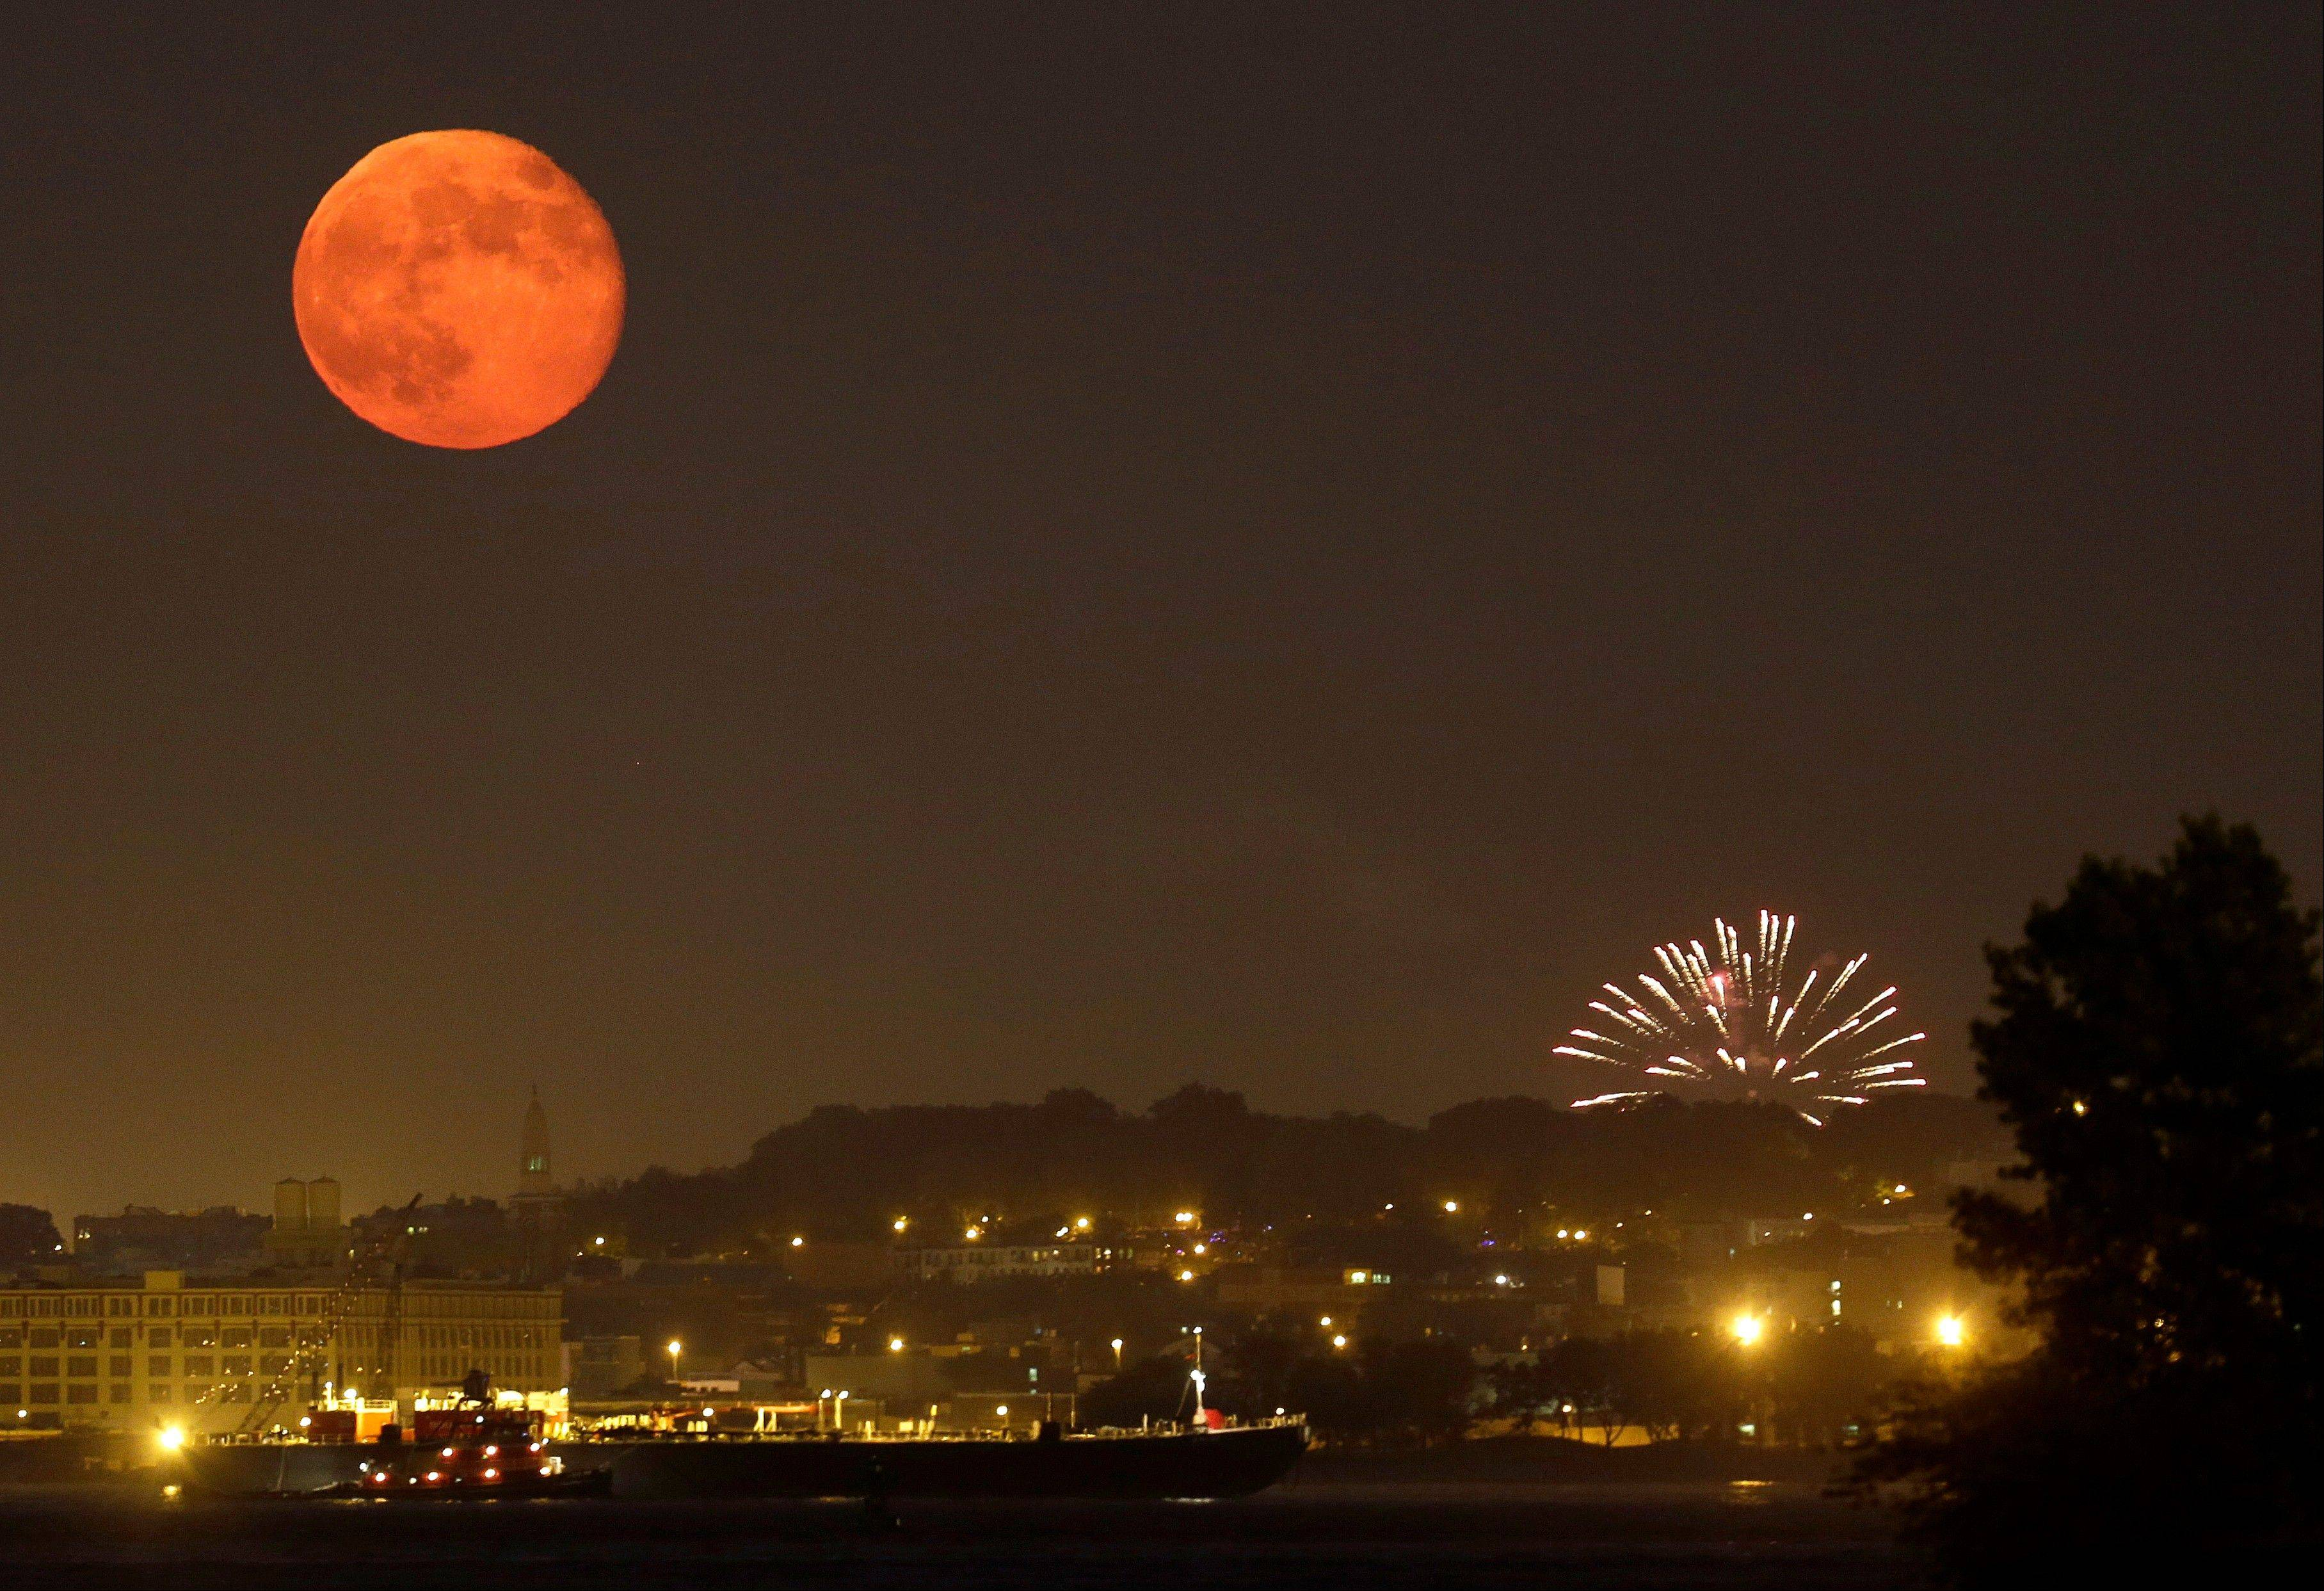 The full moon rises over Brooklyn as amateur fireworks explode are viewed from Bayonne, N.J., Wednesday, July 4, 2012.